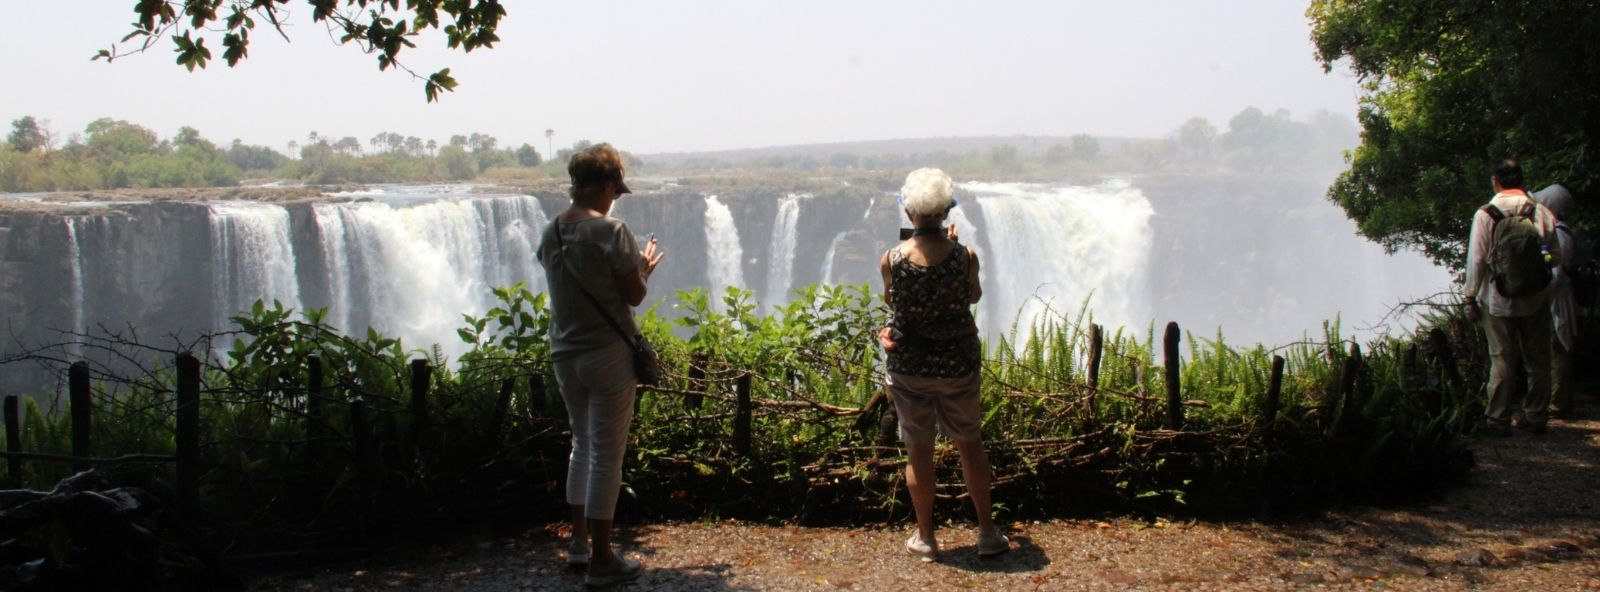 Alexandra's Africa guests enjoying the Victoria Falls